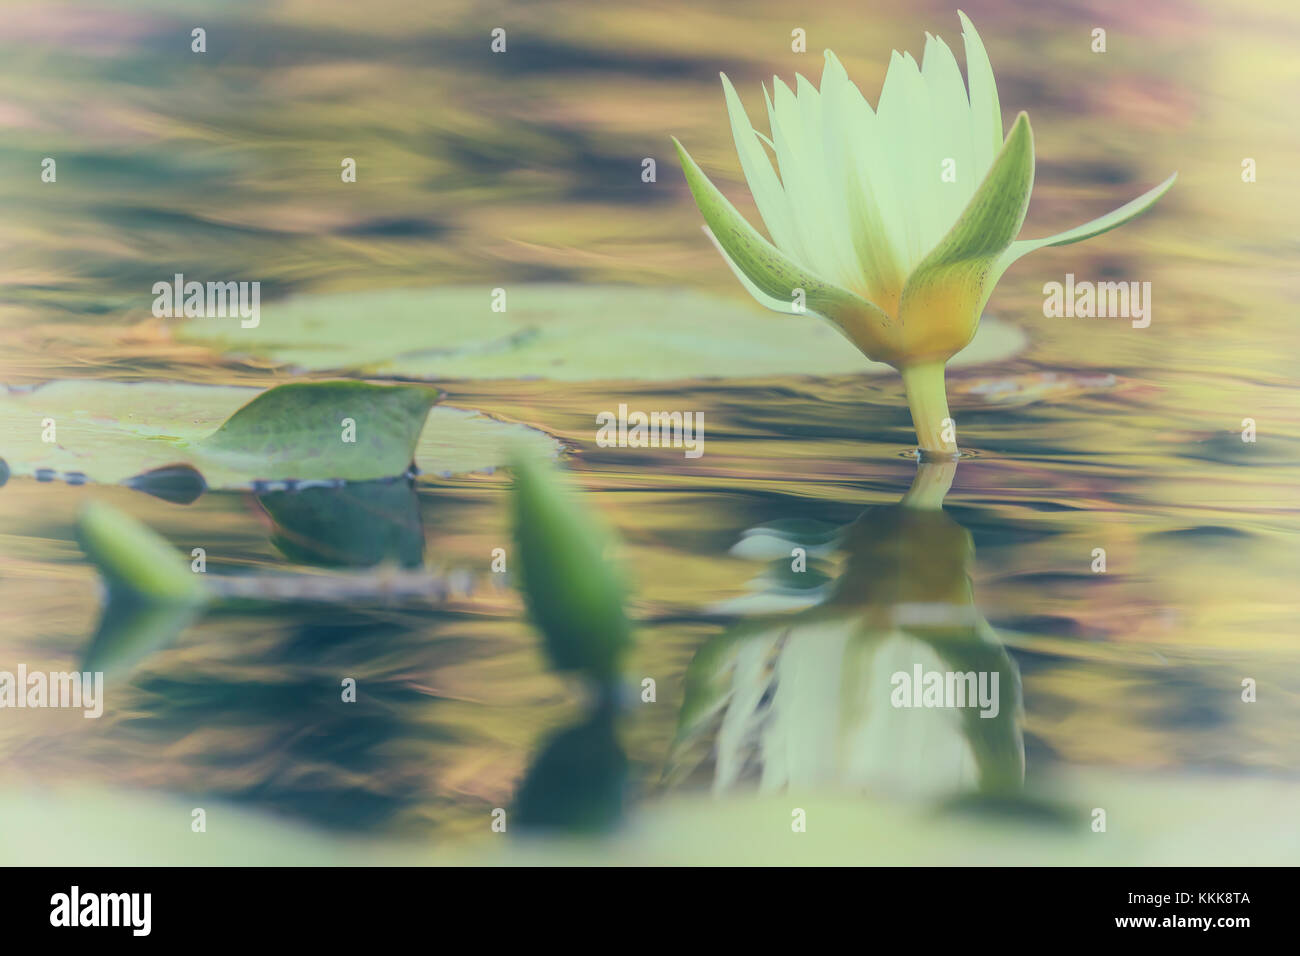 A close up of a water lily flower (Nymphaea sp.) in a water garden in New York City Central Park, New York. Filters - Stock Image